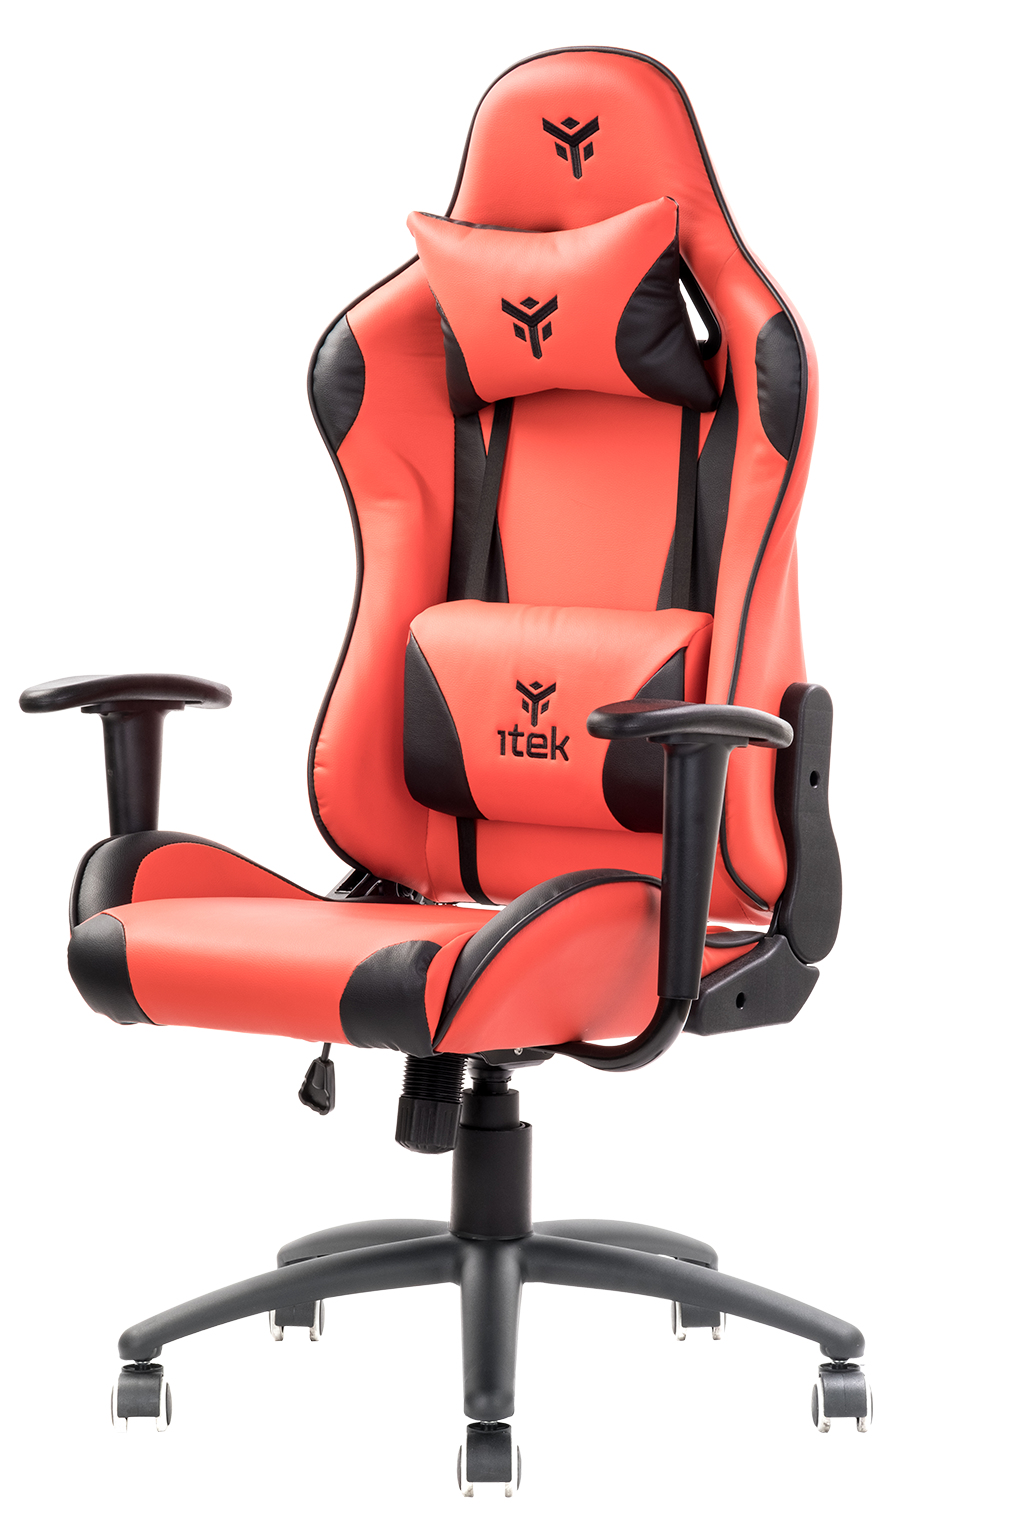 itek Gaming Chair PLAYCOM PM20 - PVC, Doppio Cuscino, Schienale Reclinabile, Rosso Nero